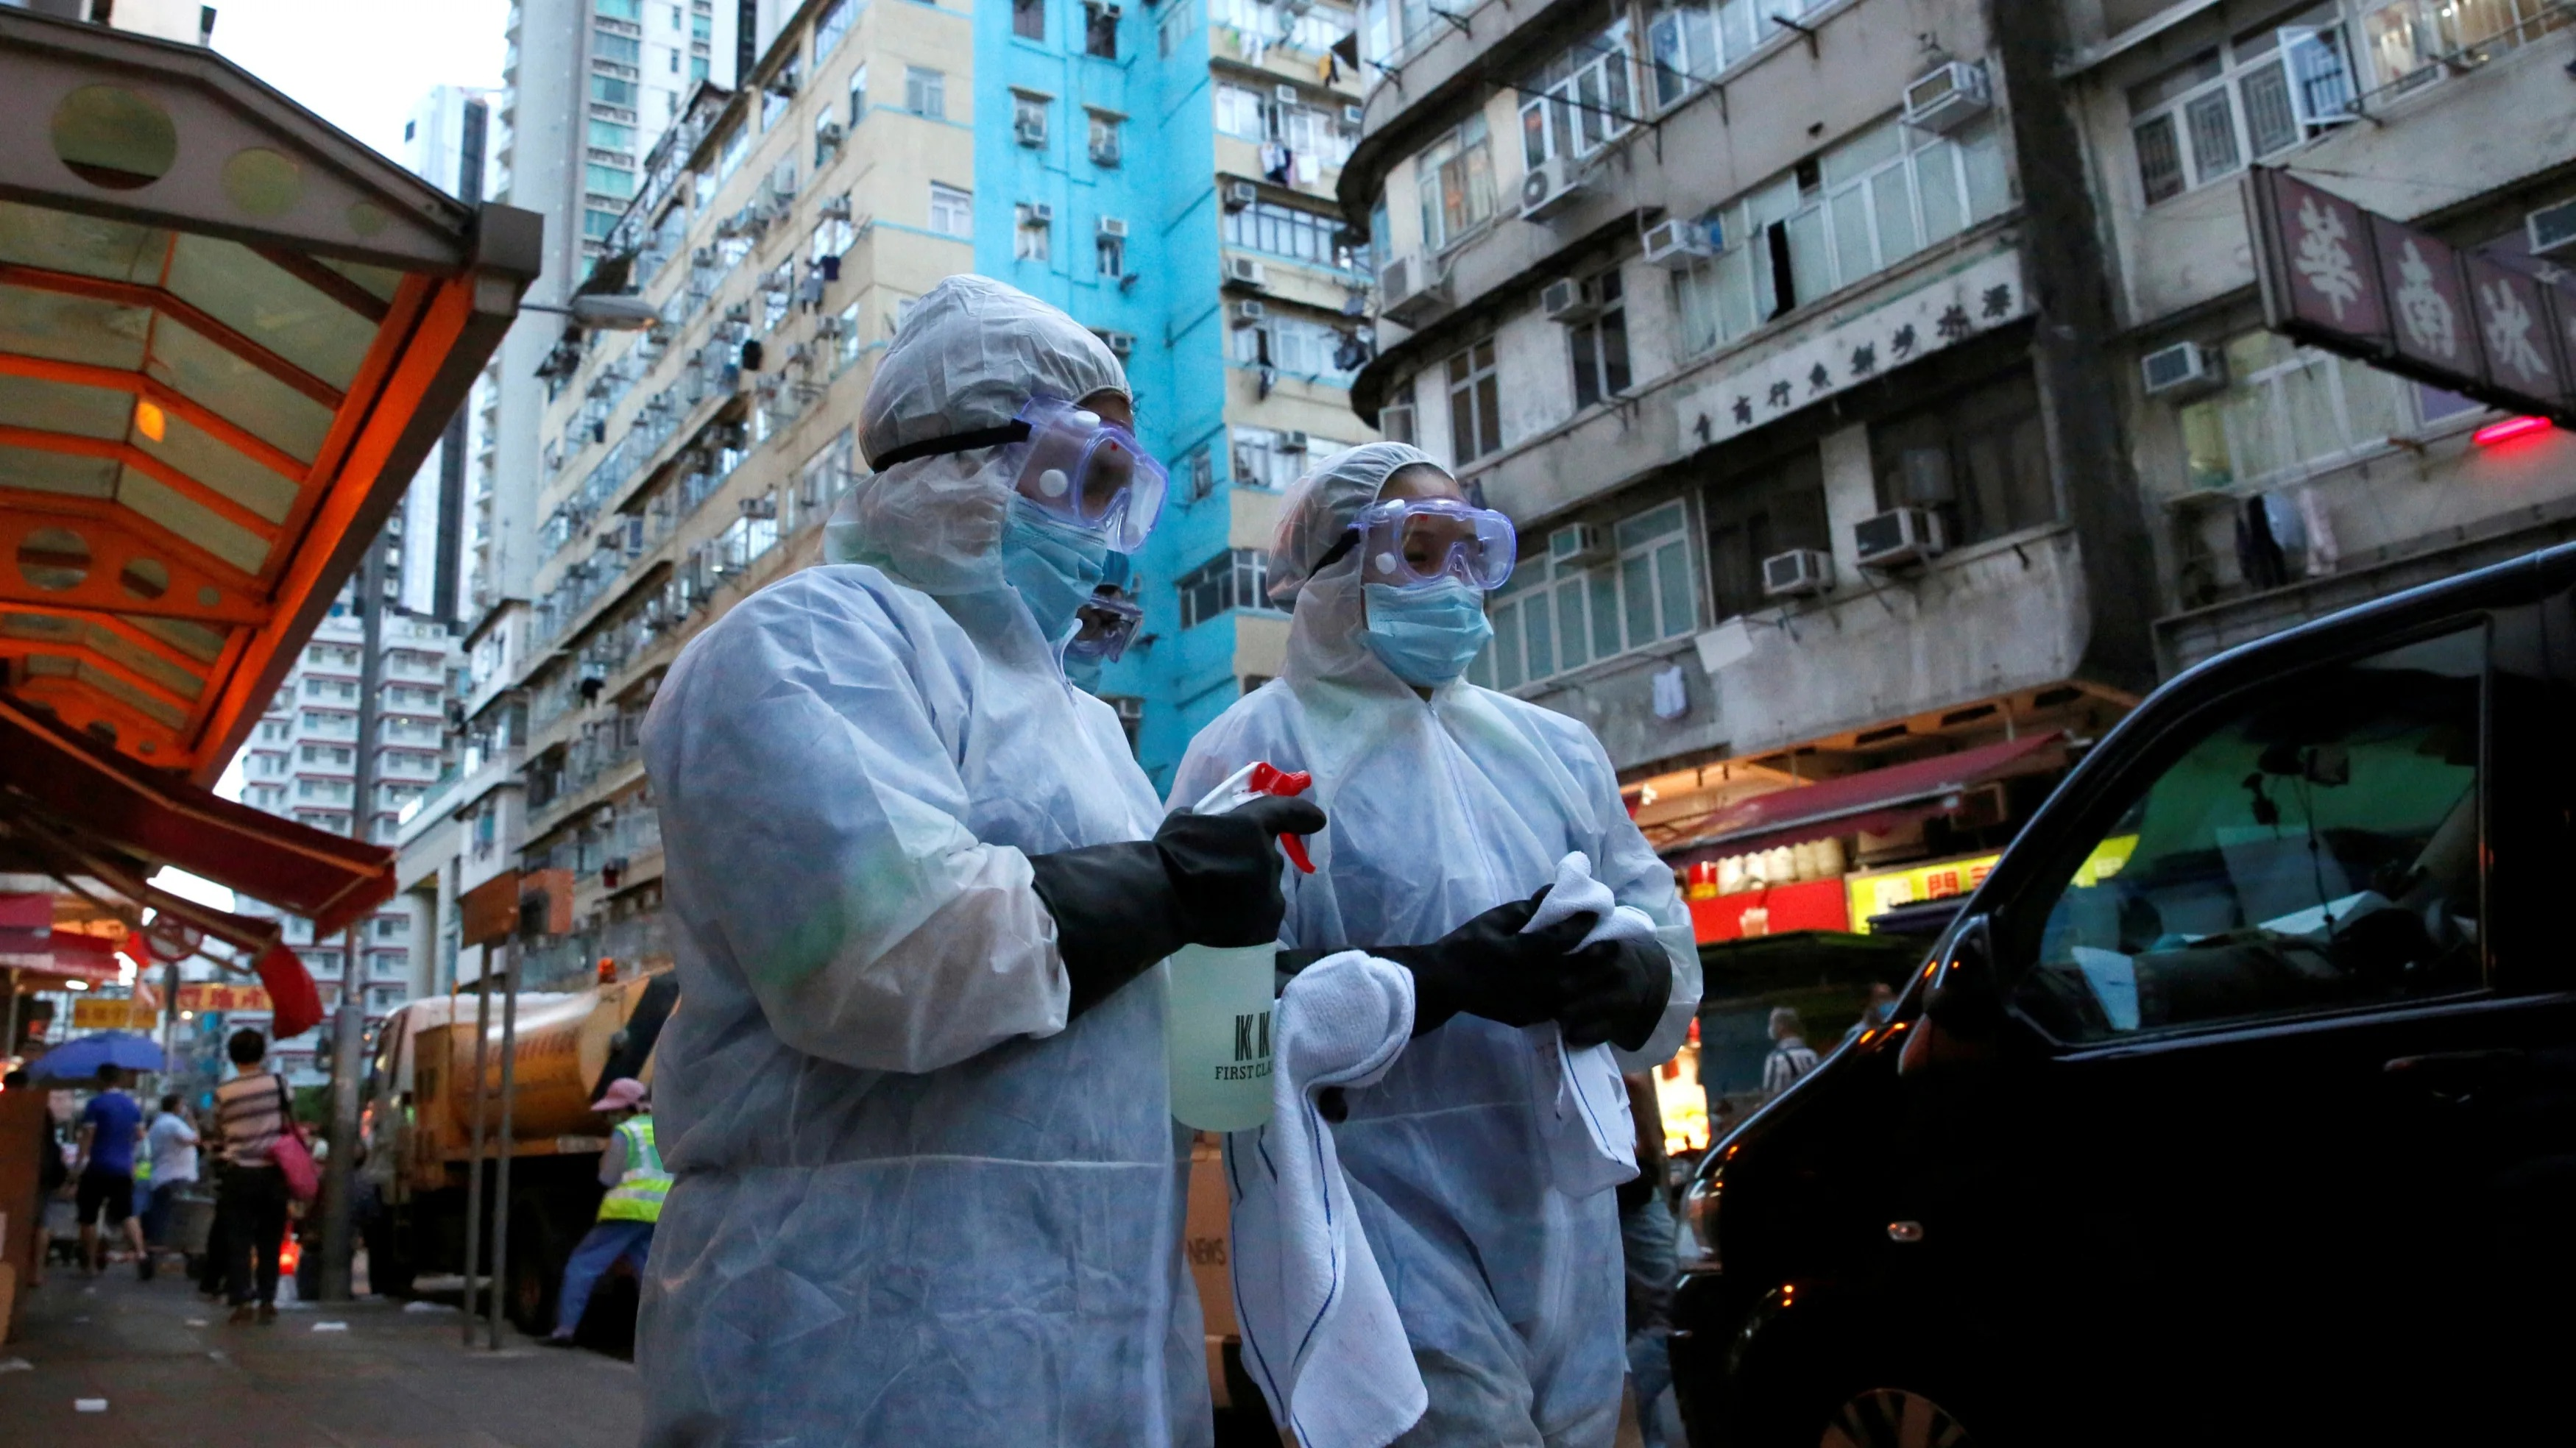 Cleaning workers wearing protective gear walk past a wet market following the coronavirus disease outbreak at Sham Shui Po one of the oldest districts in Hong Kong